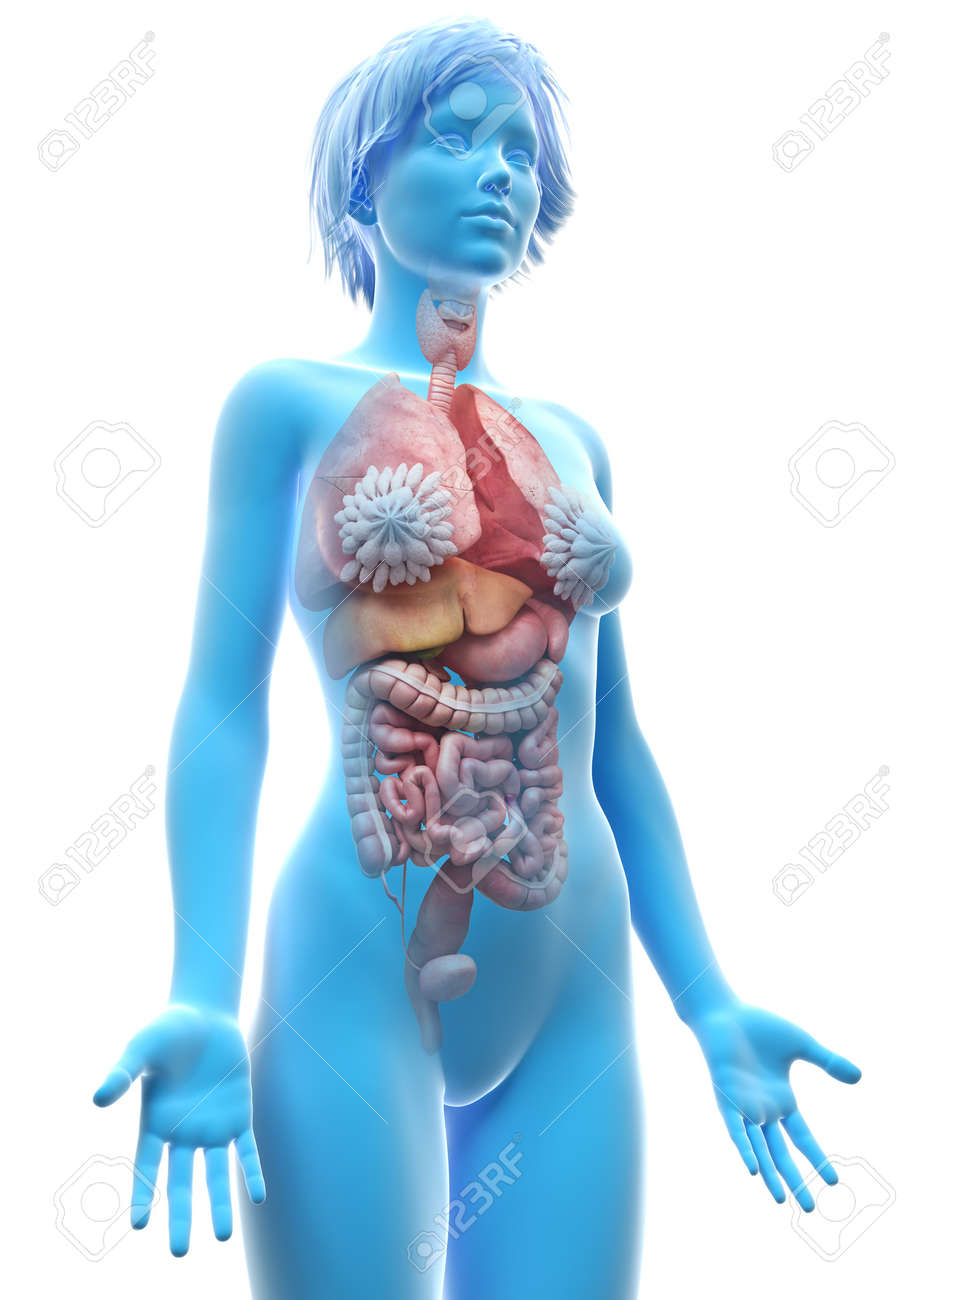 3d Rendered Medically Accurate Illustration Of The Female Organs